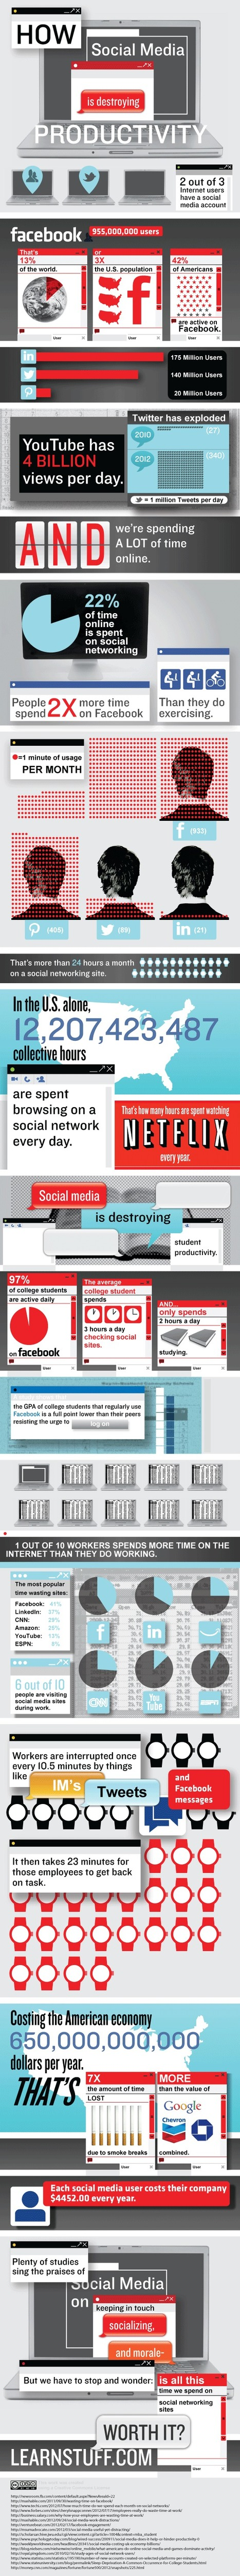 Social Media at Work [Infographic] - Malhar Barai | Information Technology | Scoop.it